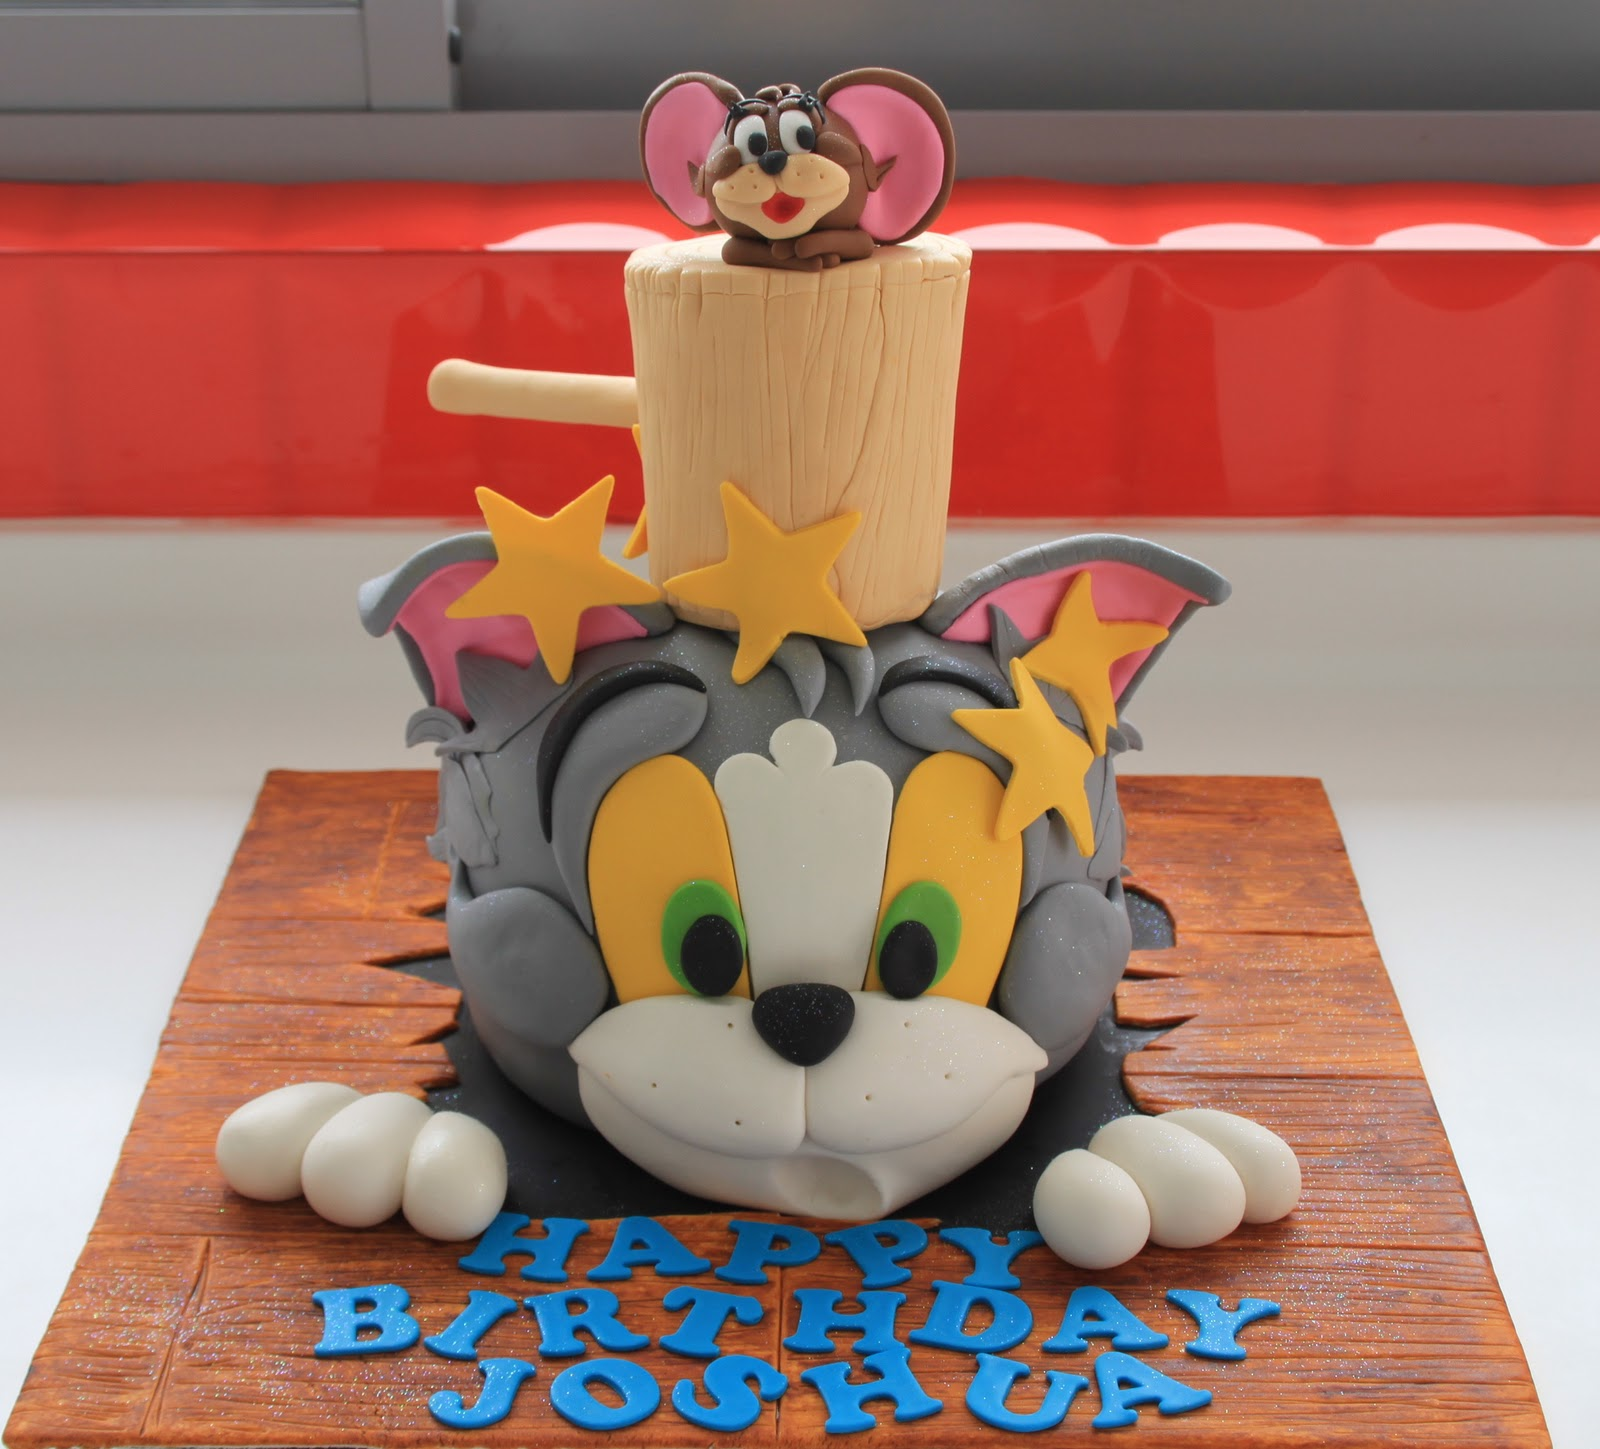 Birthday Cake Images With Cartoon Character : Celebrate with Cake!: Tom and Jerry Cake